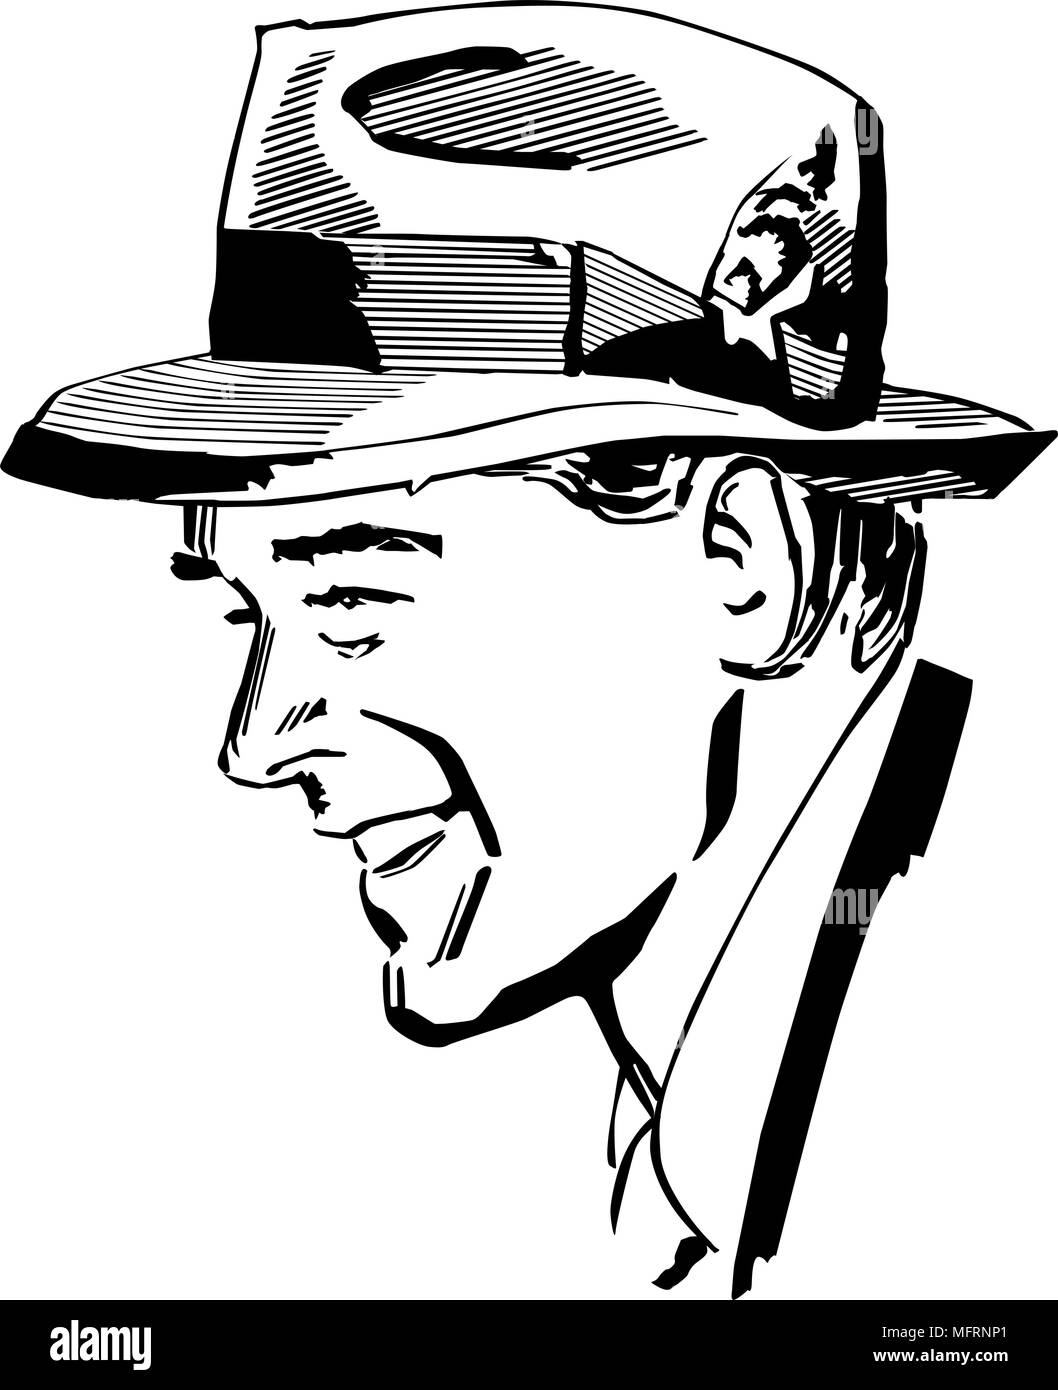 Man Wearing Fedora - Retro Clipart Illustration - Stock Image